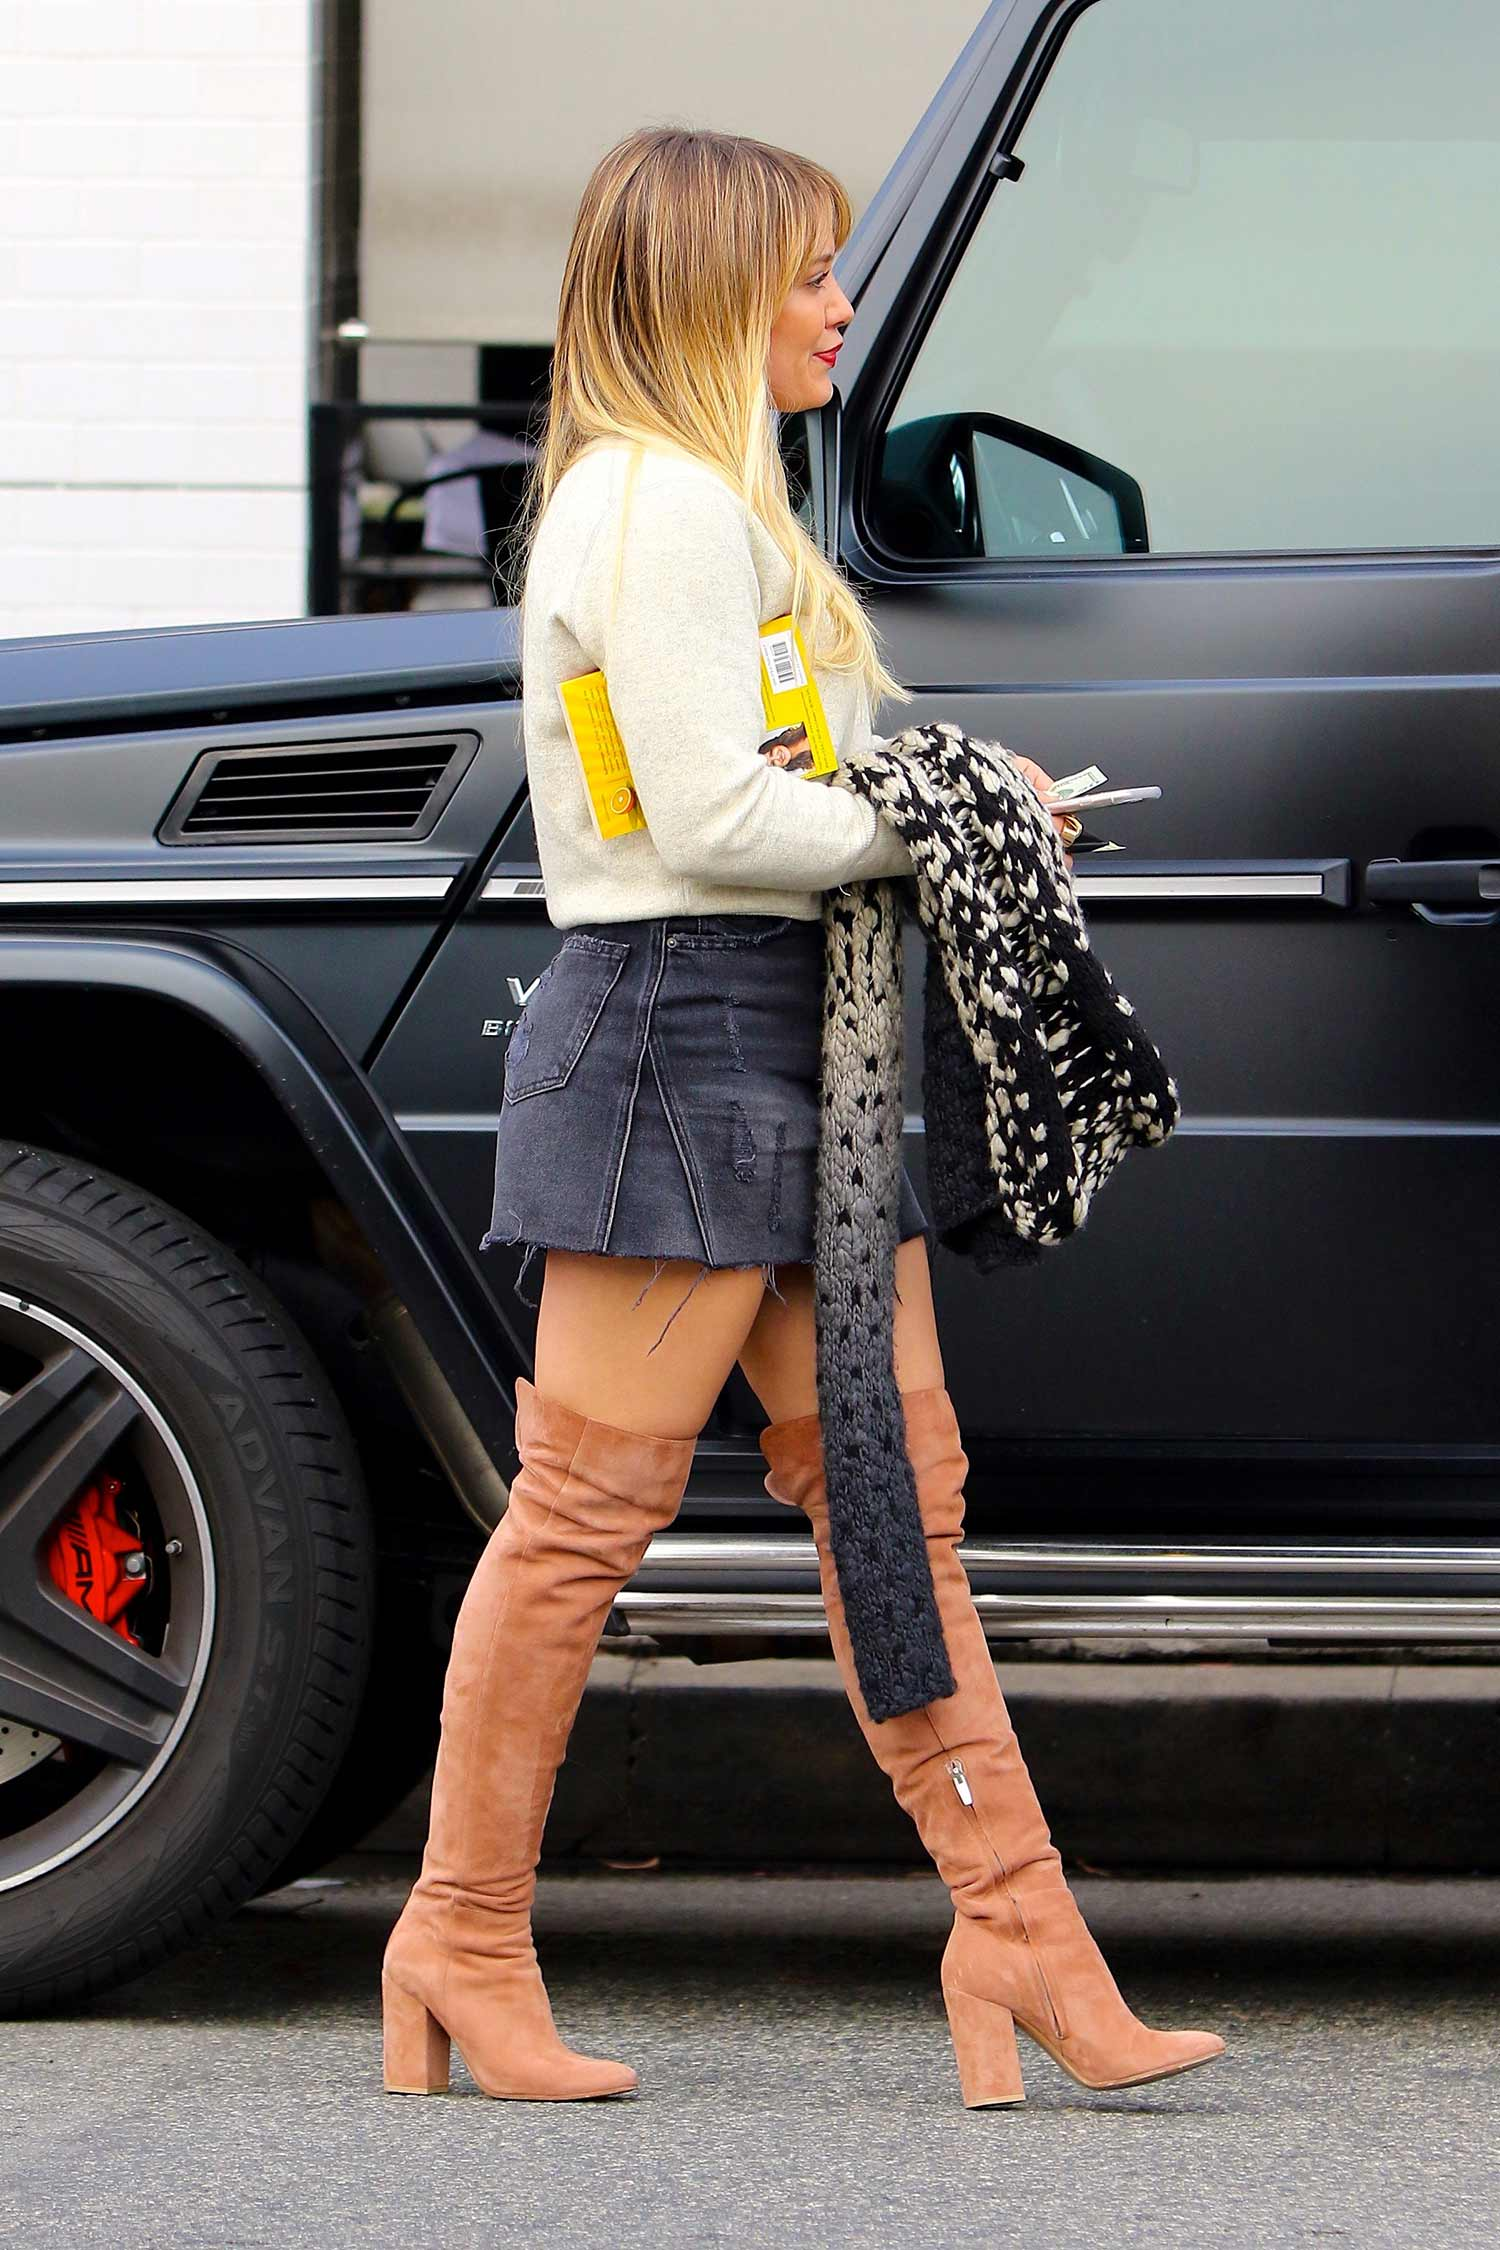 hilary-duff-denim-mini-skirt-thigh-high-boots